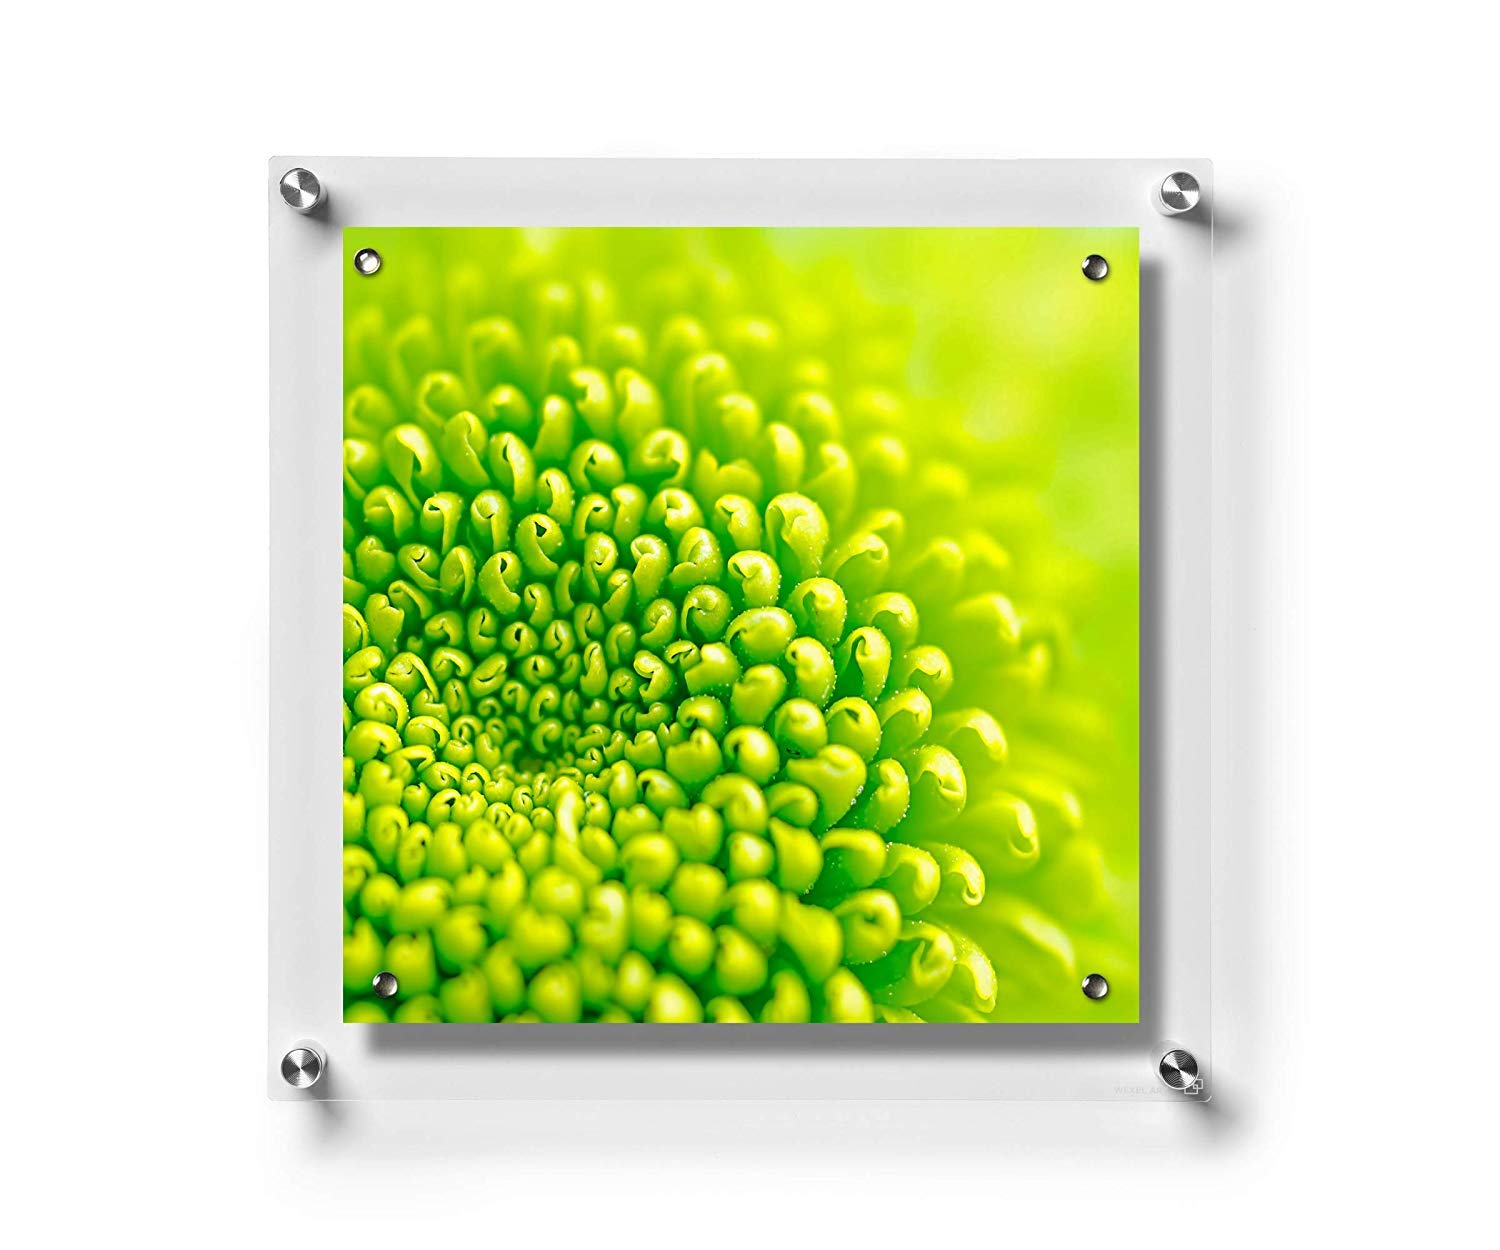 Wexel Art 23x23-Inch Big Square Magnetic Single Panel Framing Grade Acrylic Floating Frame with Silver Hardware for 20x20-Inch Art & Photos